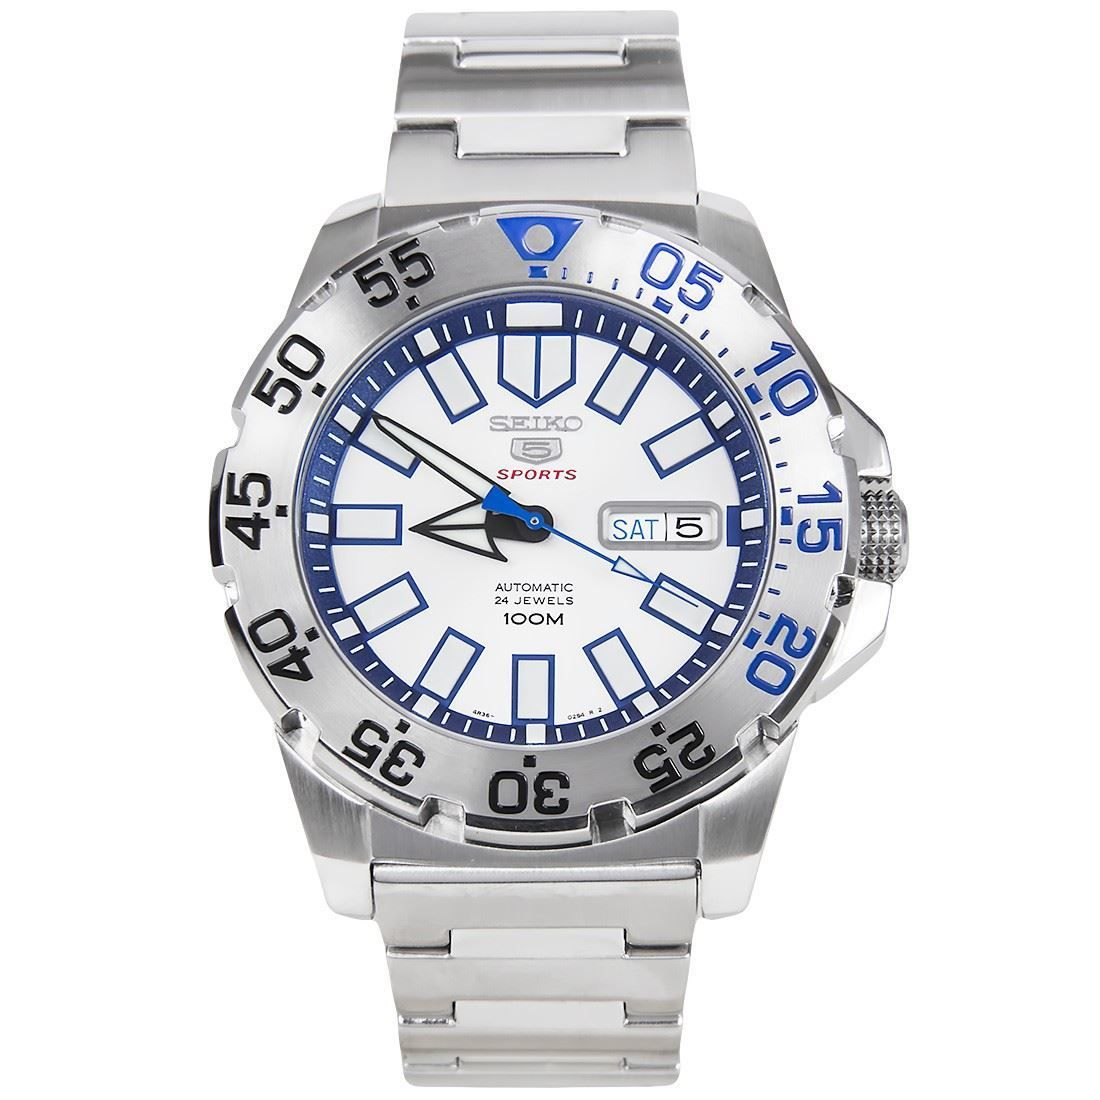 Srp481k1 Srp481 Seiko 5 Sports Monster Automatic With Blue Leather Strap Watch Seiko 5 Sports Seiko Seiko Monster